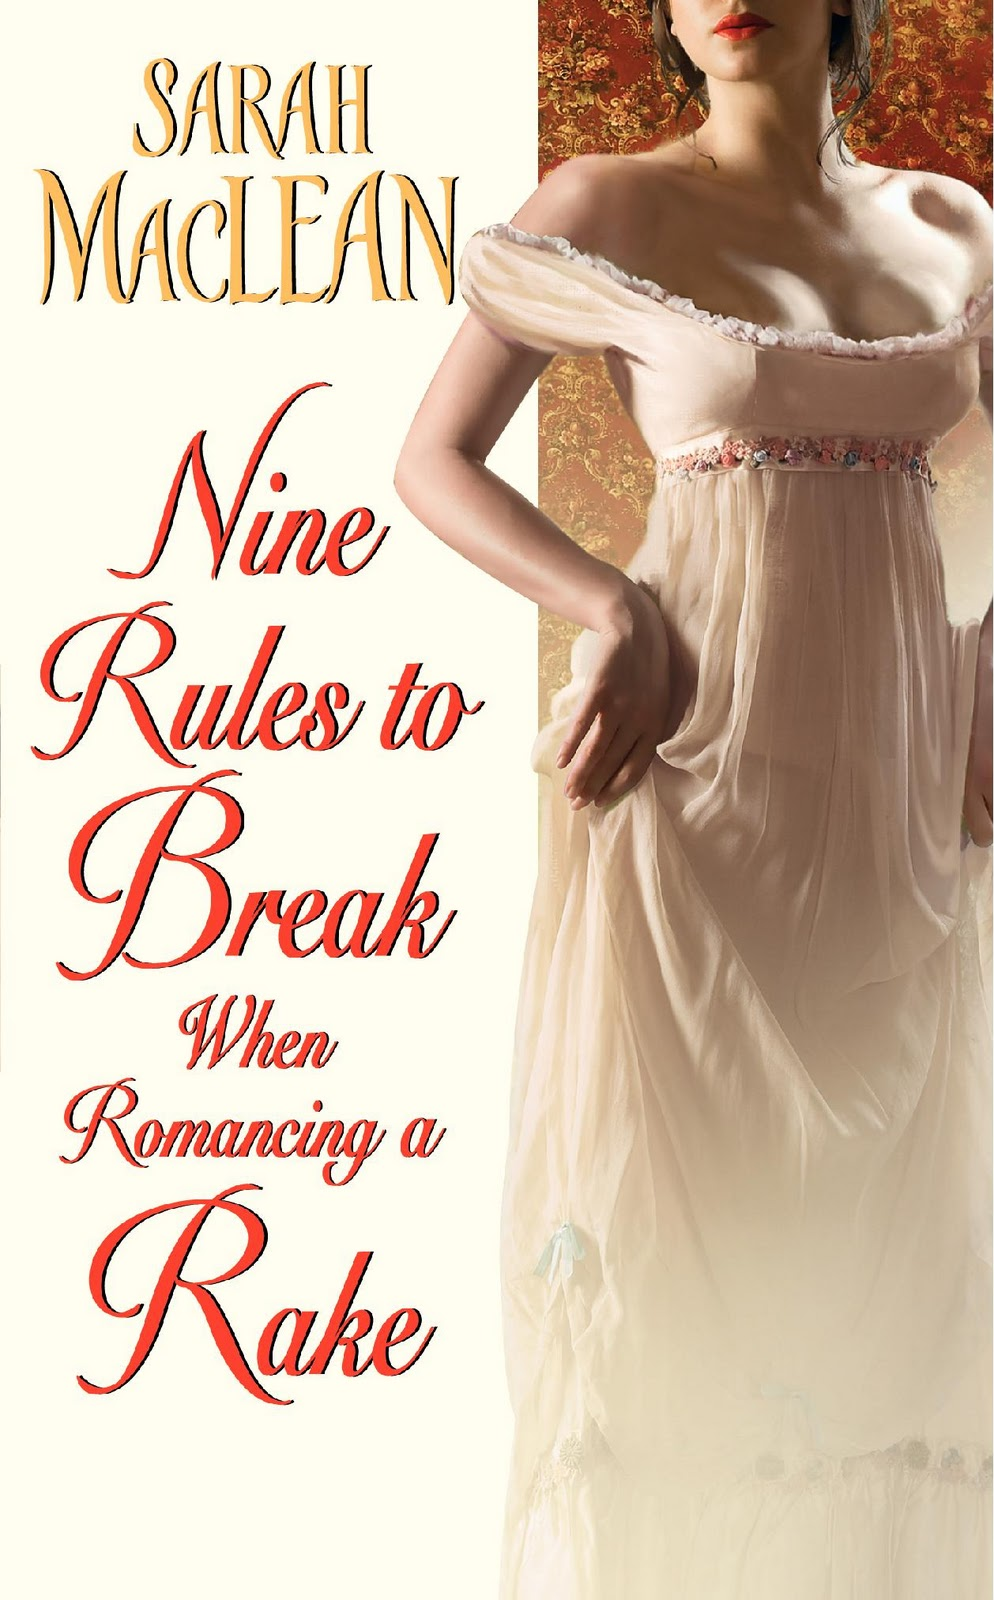 Order Nine Rules to Break...now from  Amazon ,  Barnes & Noble  or from your local  indie!    You can also order personalized signed copies of Sarah's books online at  WORD Bookstore !